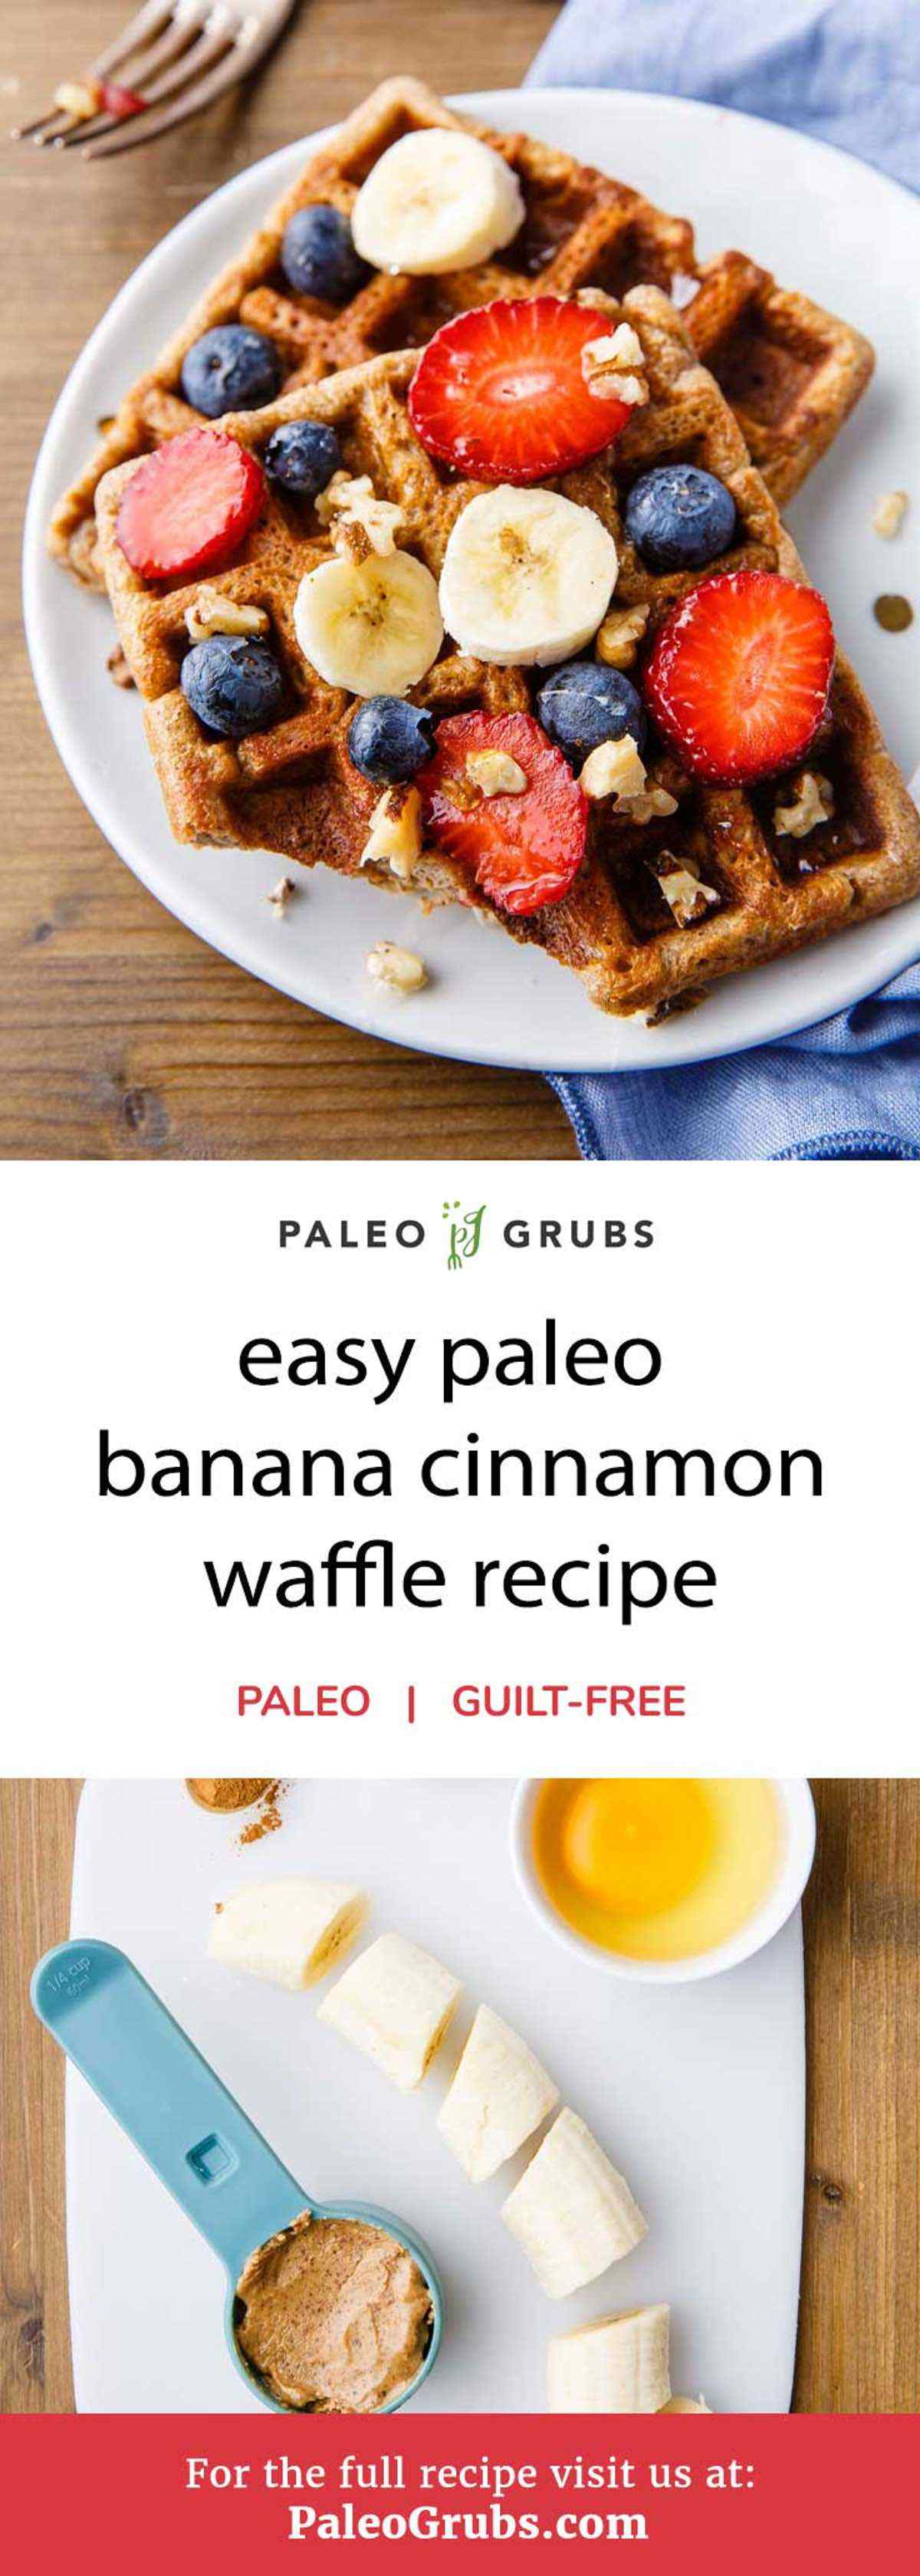 You don't have to give up your favorite breakfast meals when switching over to a paleo diet if you just change up a few of the ingredients. By using bananas and almond butter you can actually make healthy breakfast waffles that are also enhanced by adding in some cinnamon for a delightful flavor.